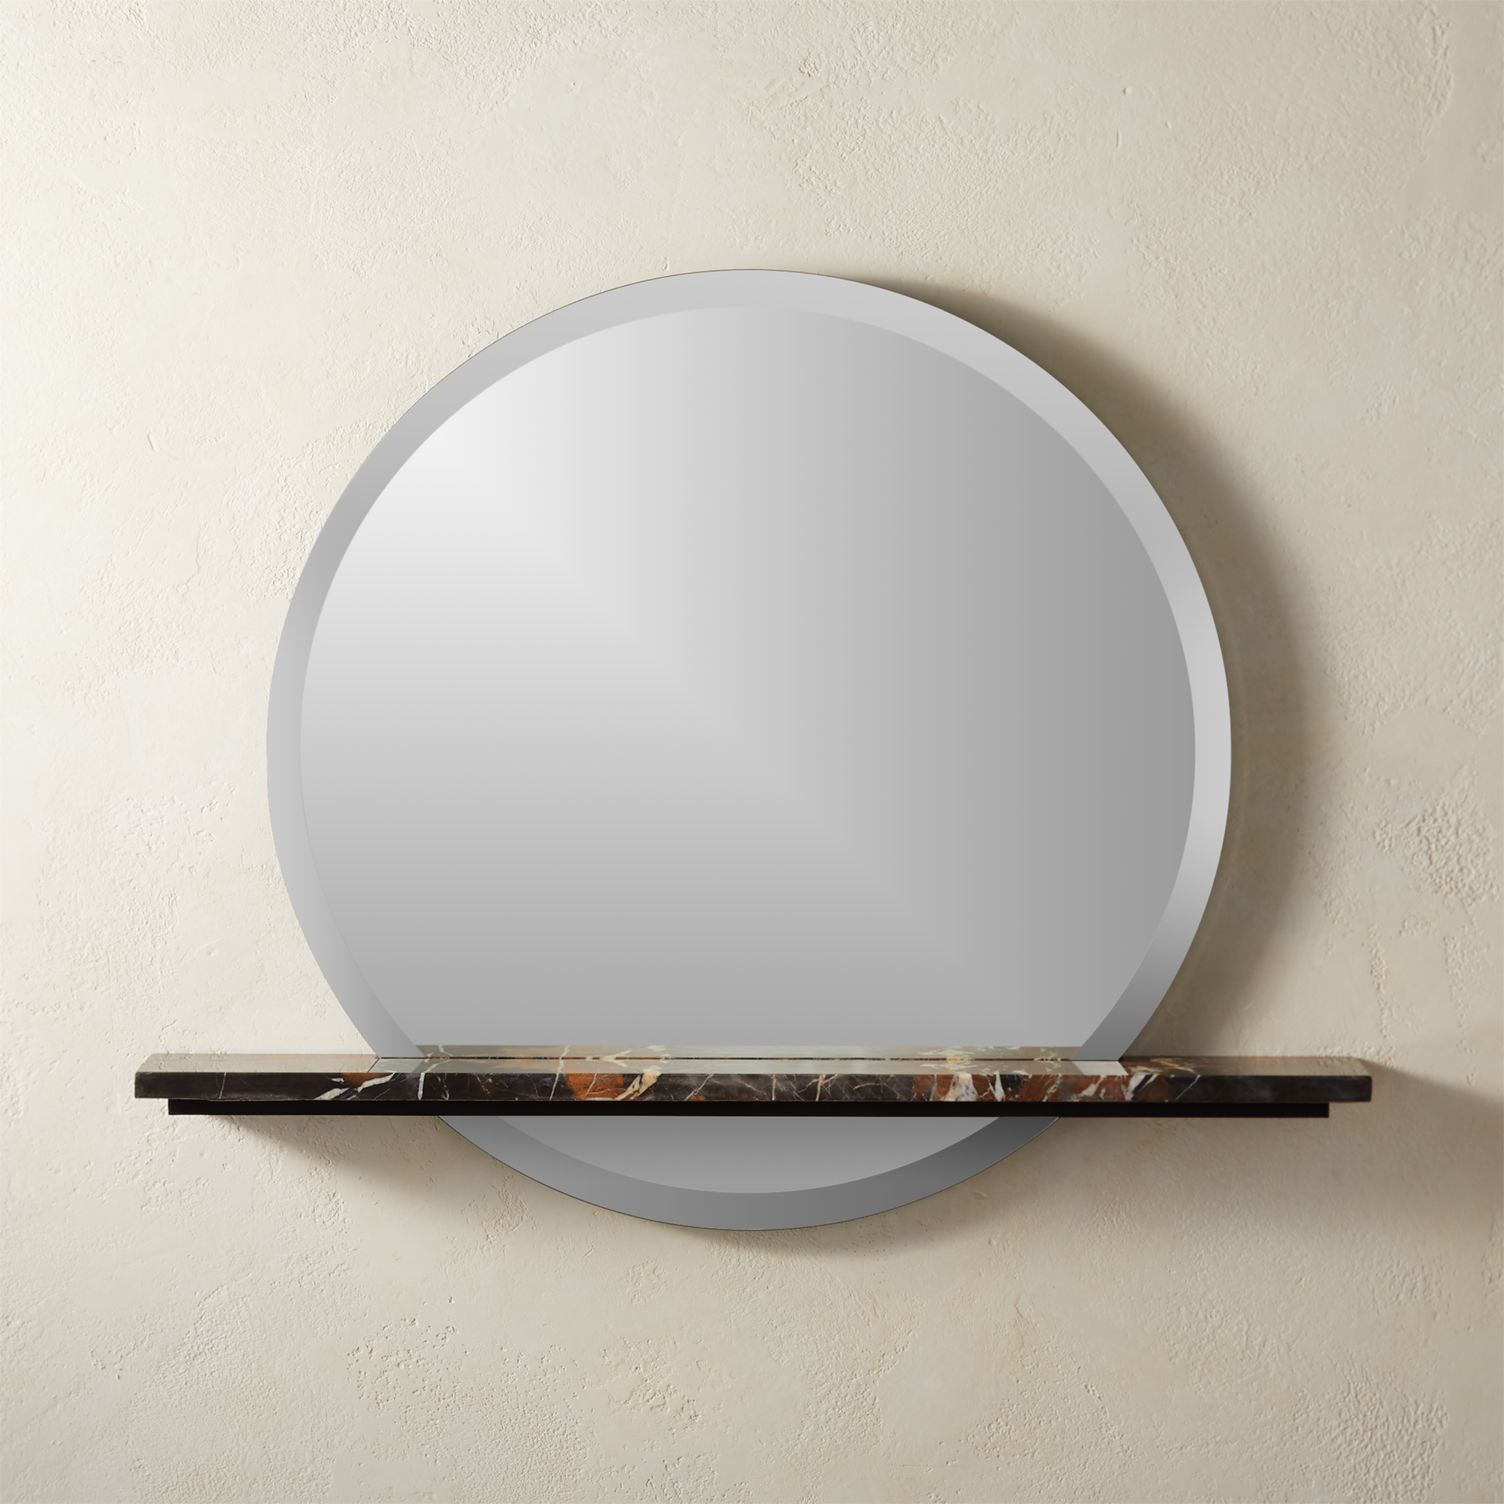 Round mirror with a marble shelf